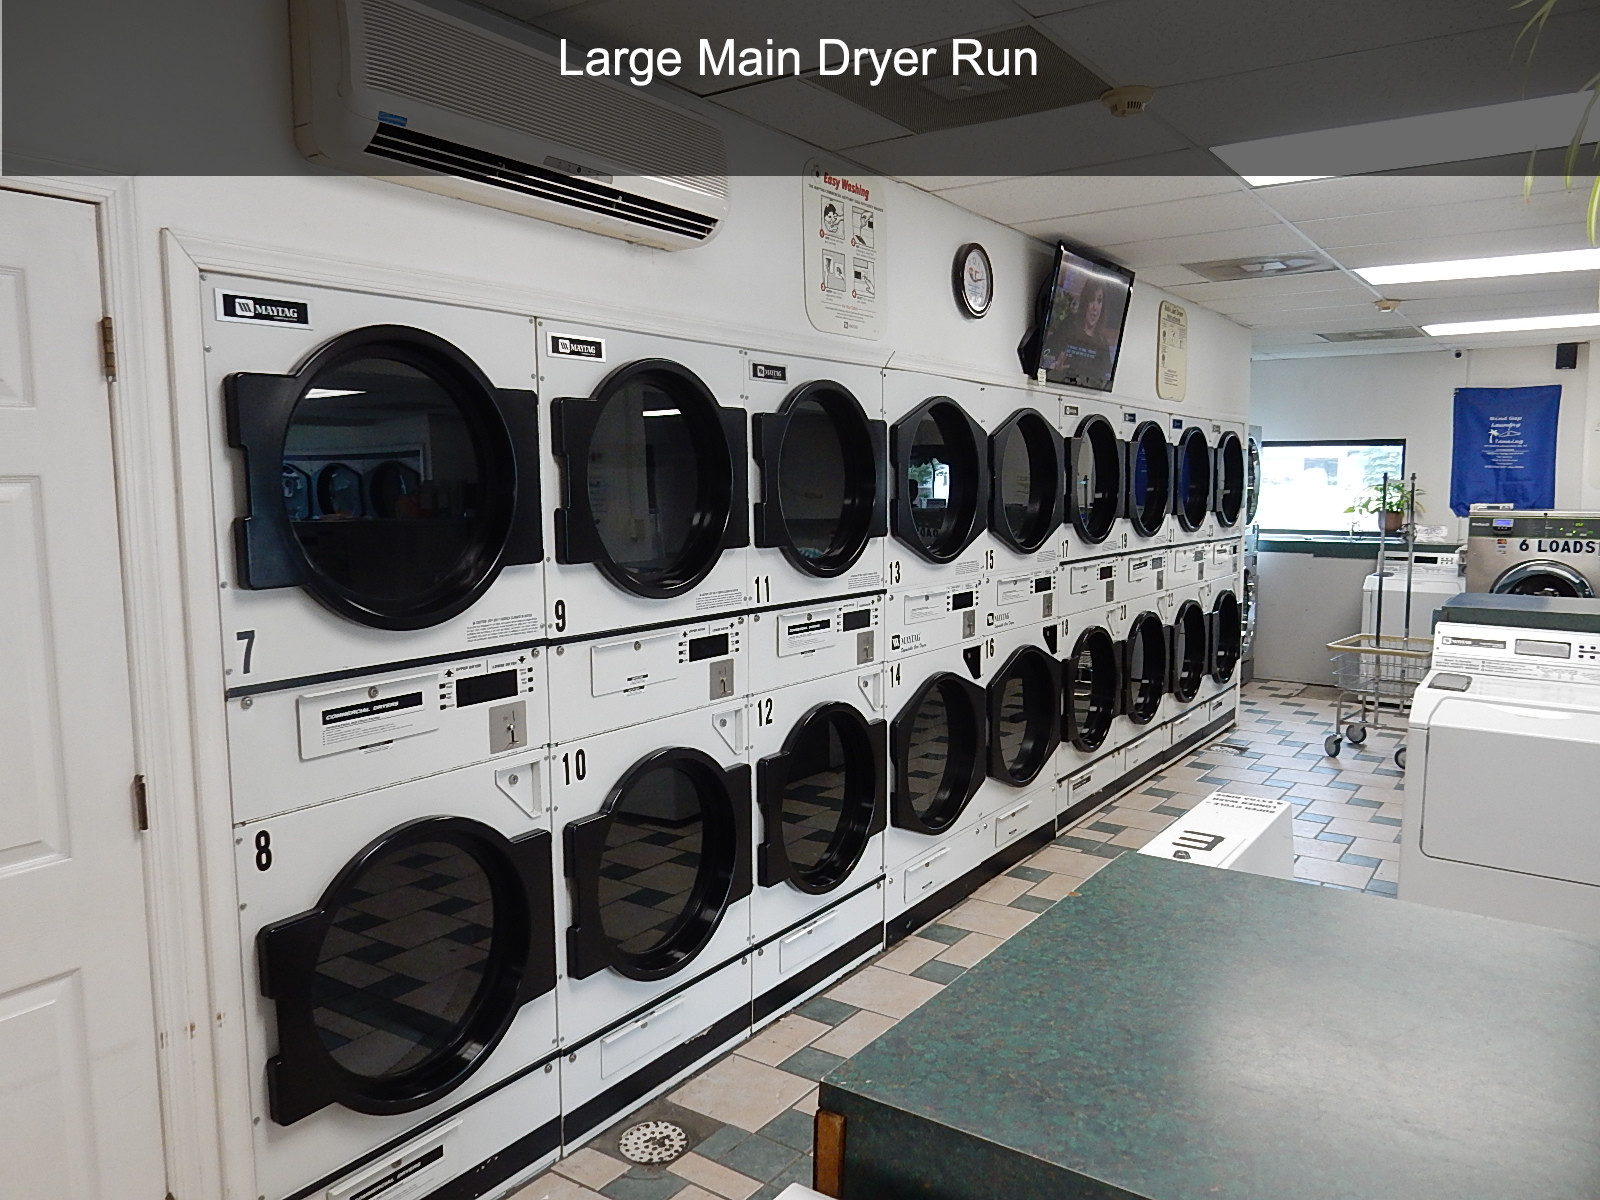 Large Main Dryer Run